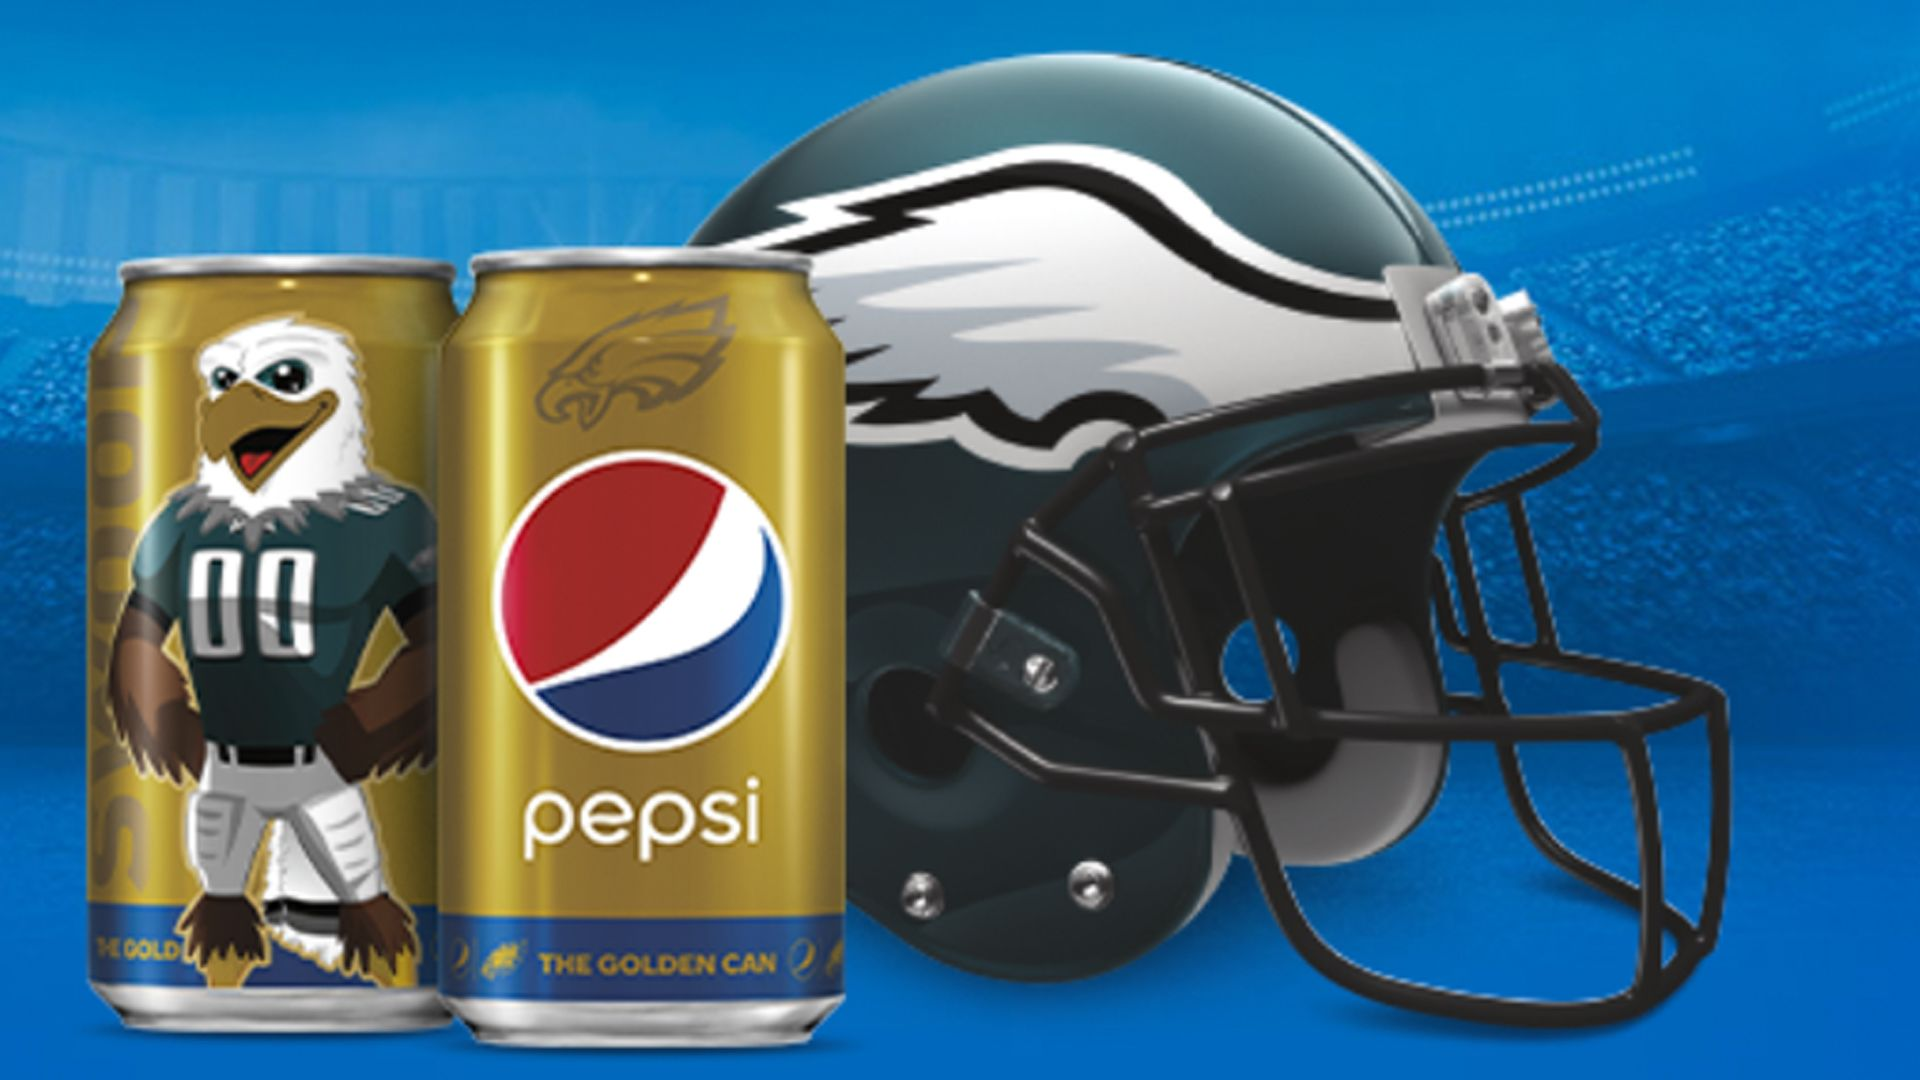 Pepsi Golden Can